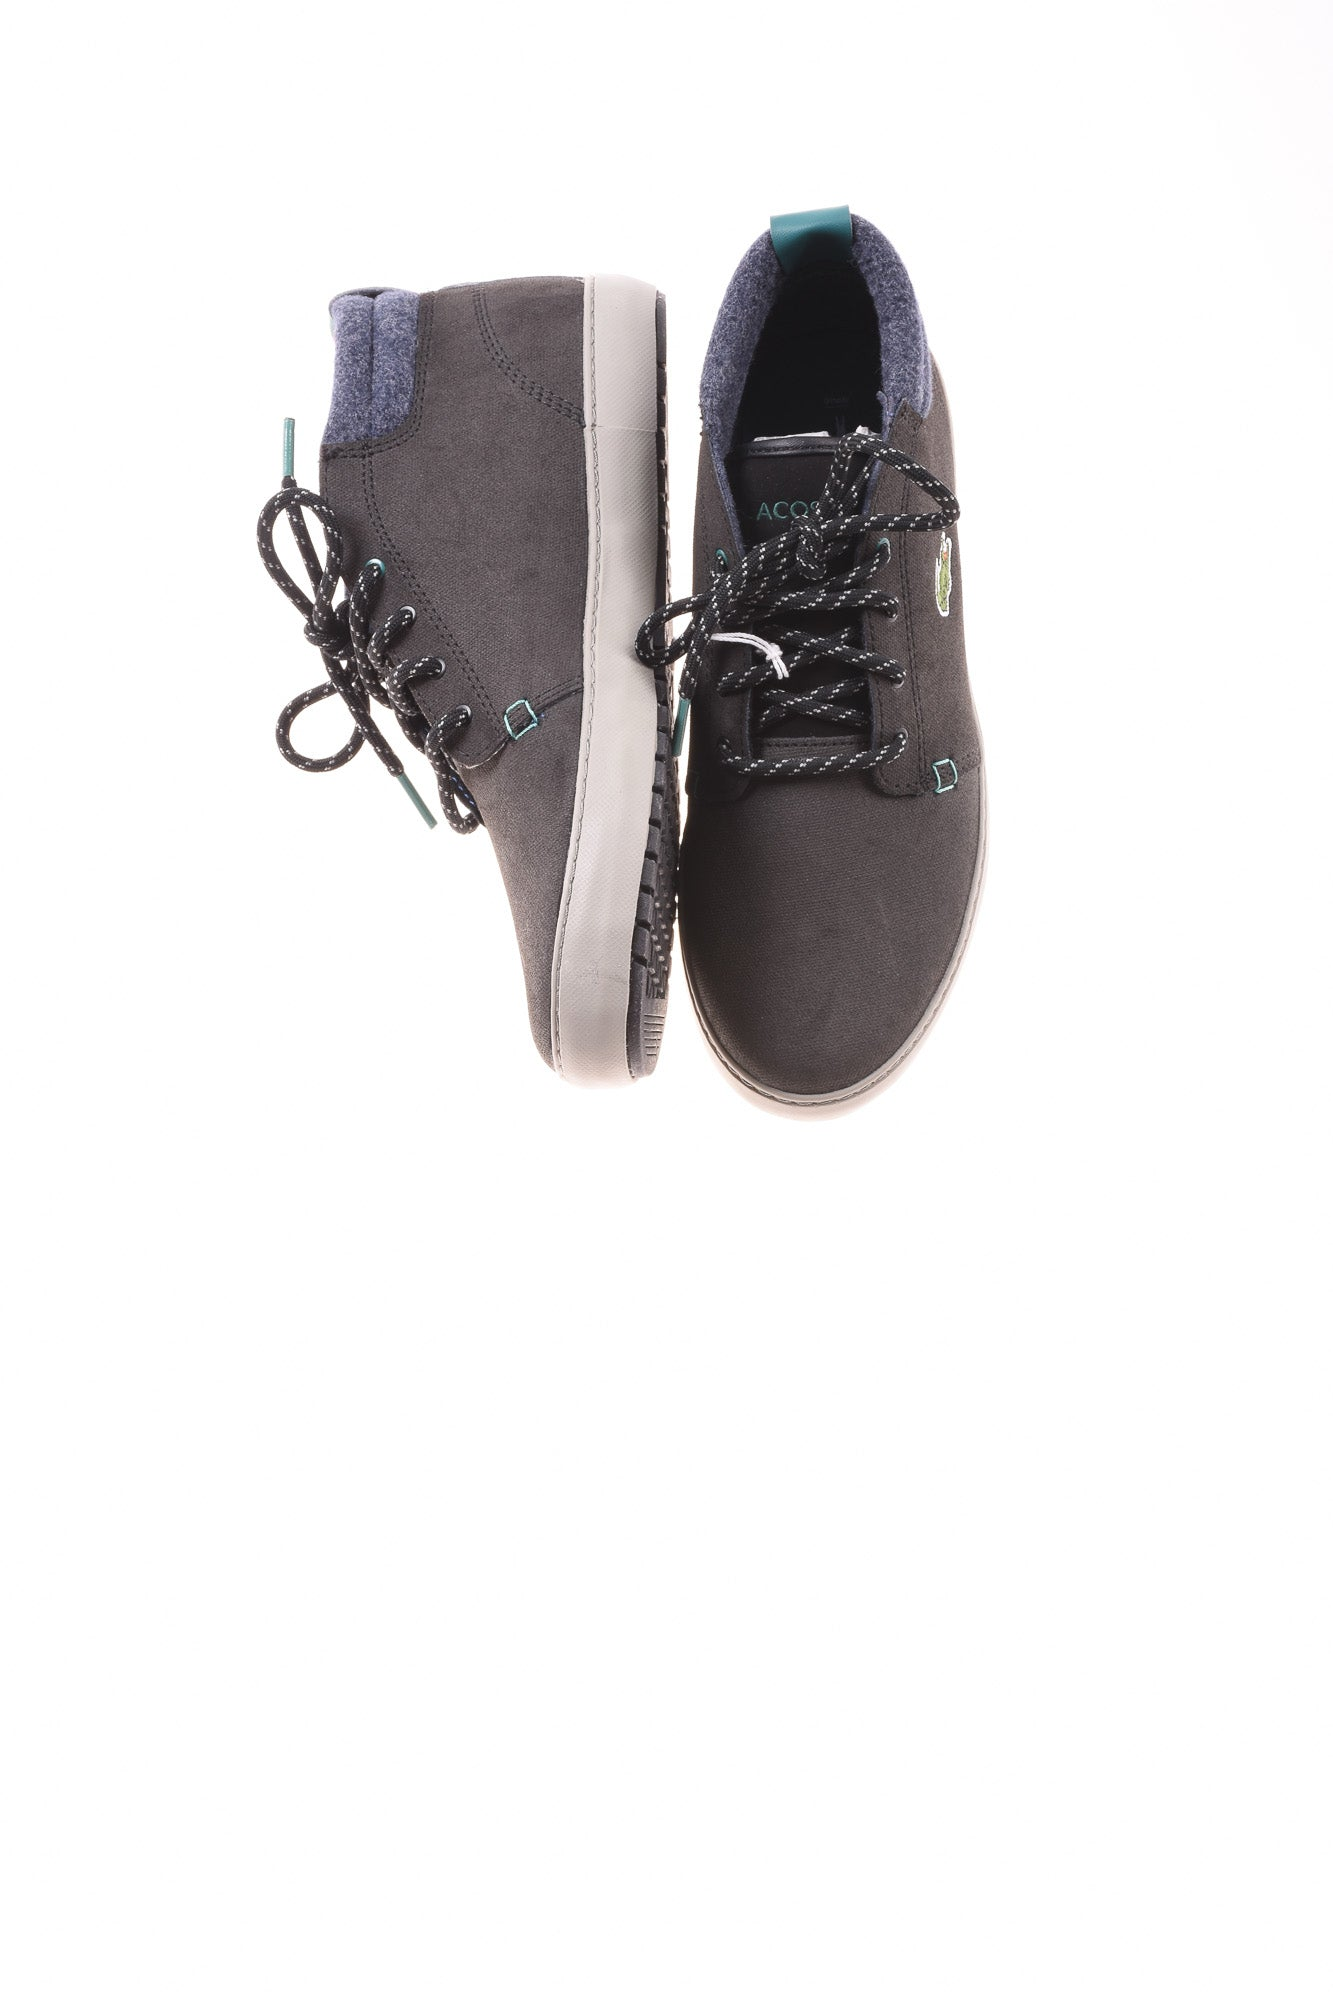 a646111e6 USED Lacoste Women s Shoes 7.5 Gray - Village Discount Outlet